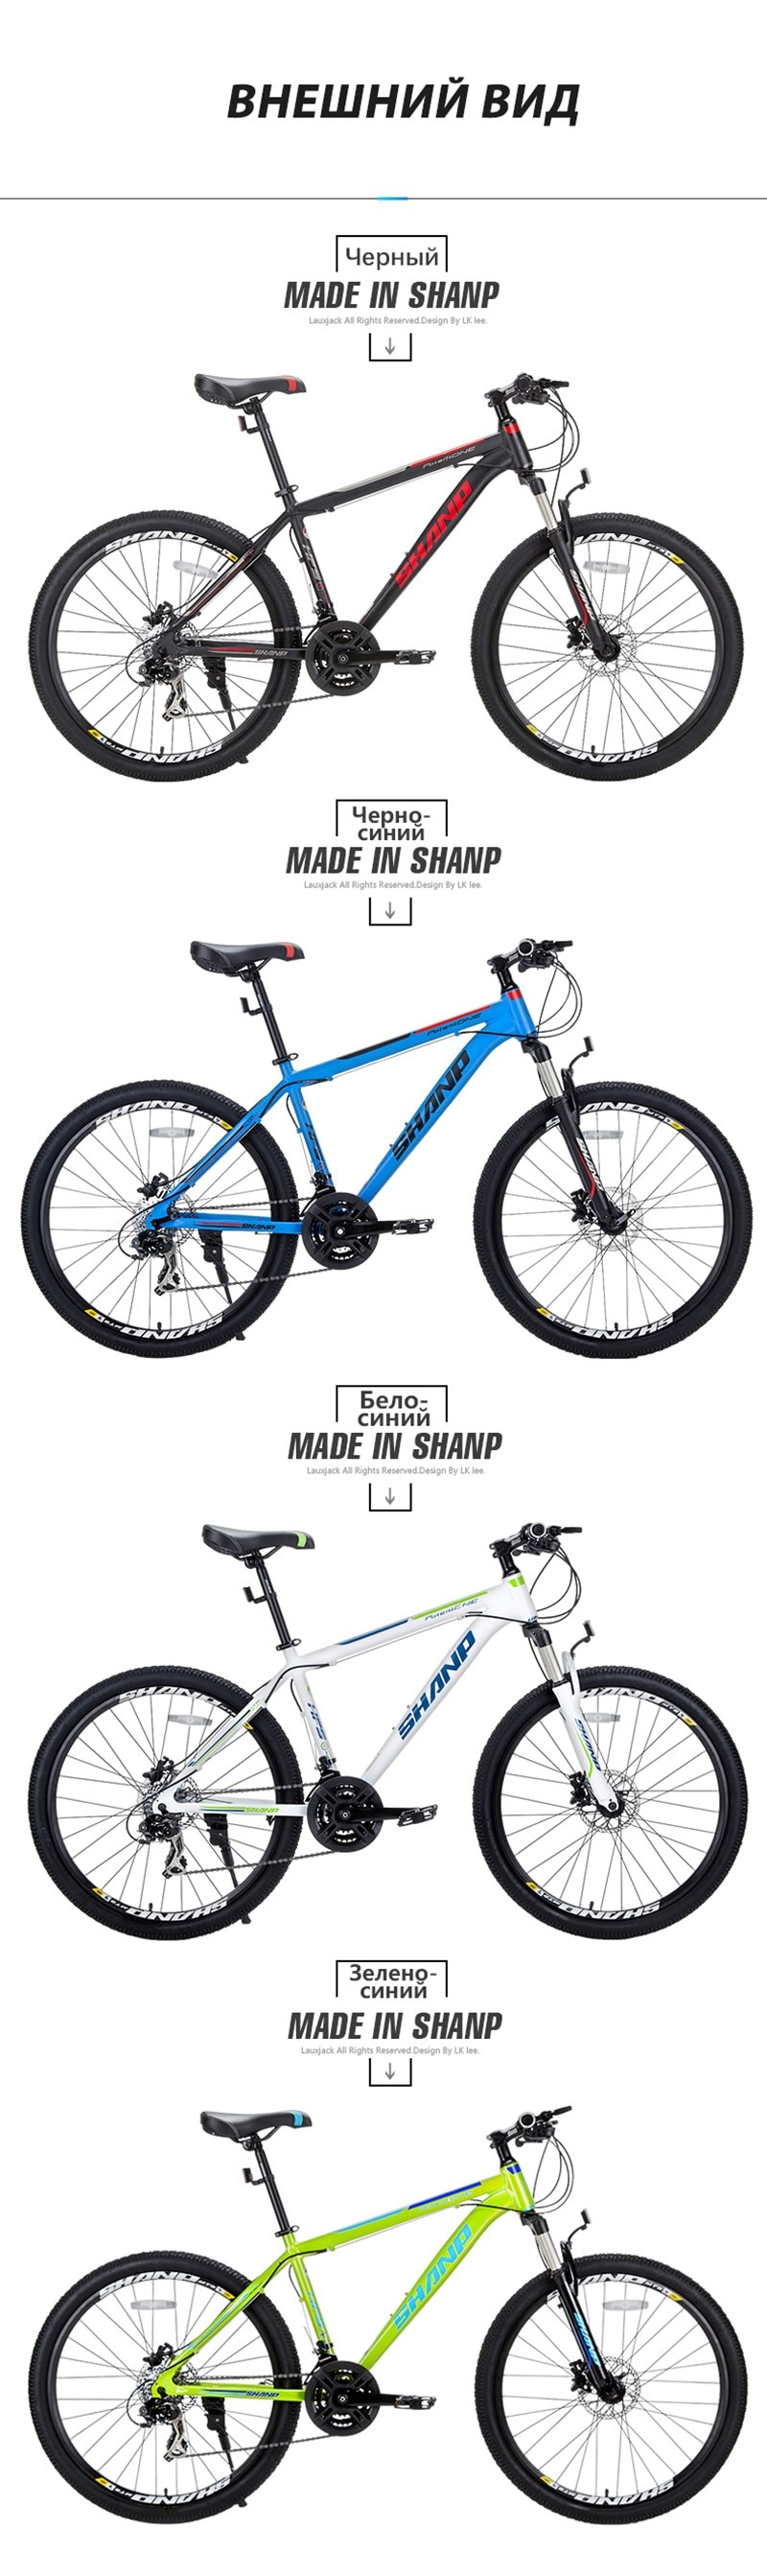 "Фото SHANP Mountain Bike Aluminum Frame 21/24 Speed Shimano 26"" Wheel /27.5Wheel/29Wheel"